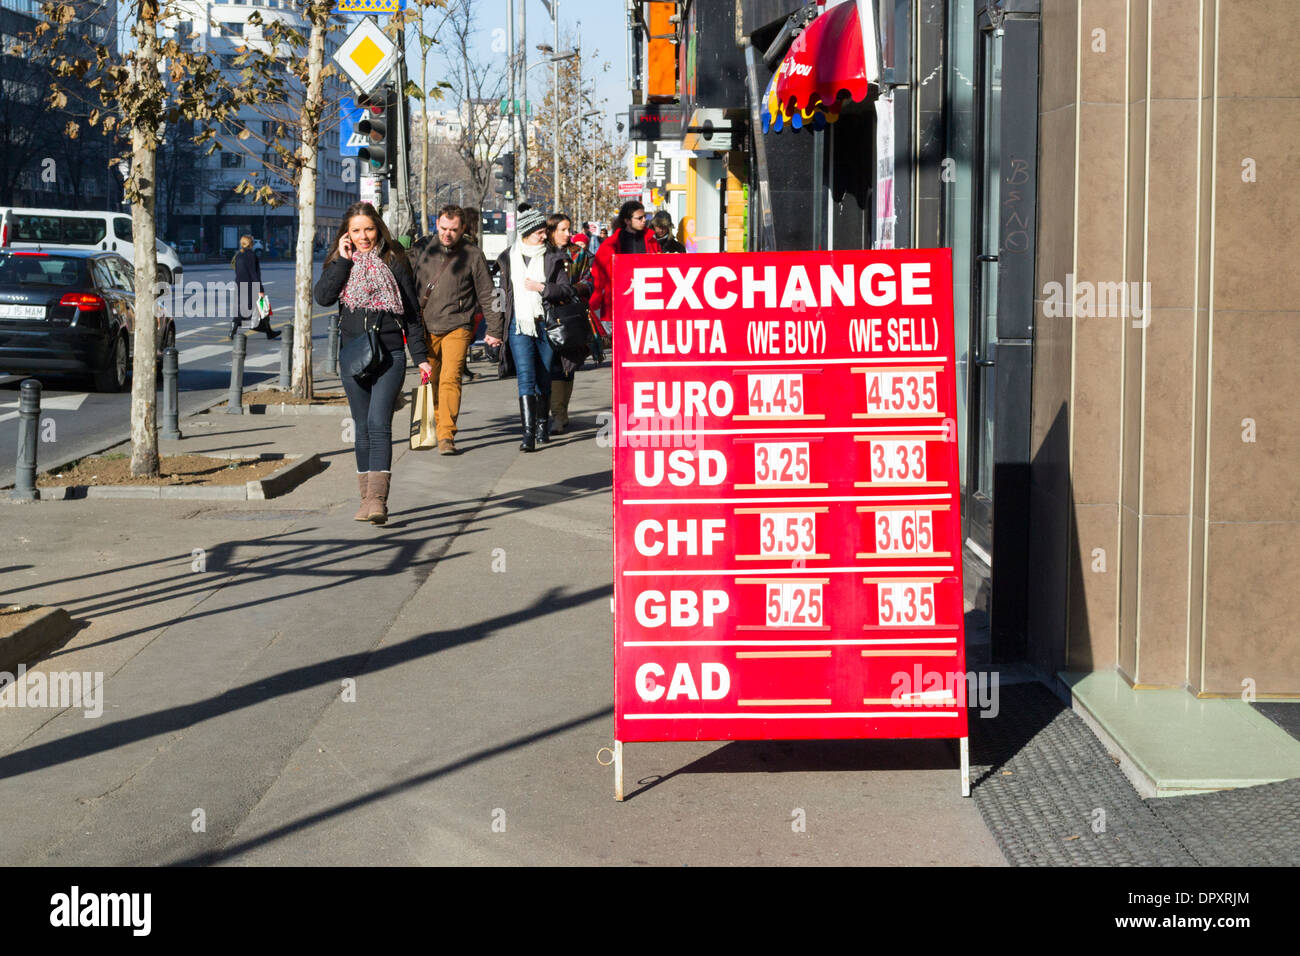 Foreign currency exchange rate board in Bucharest, Romania Stock Photo